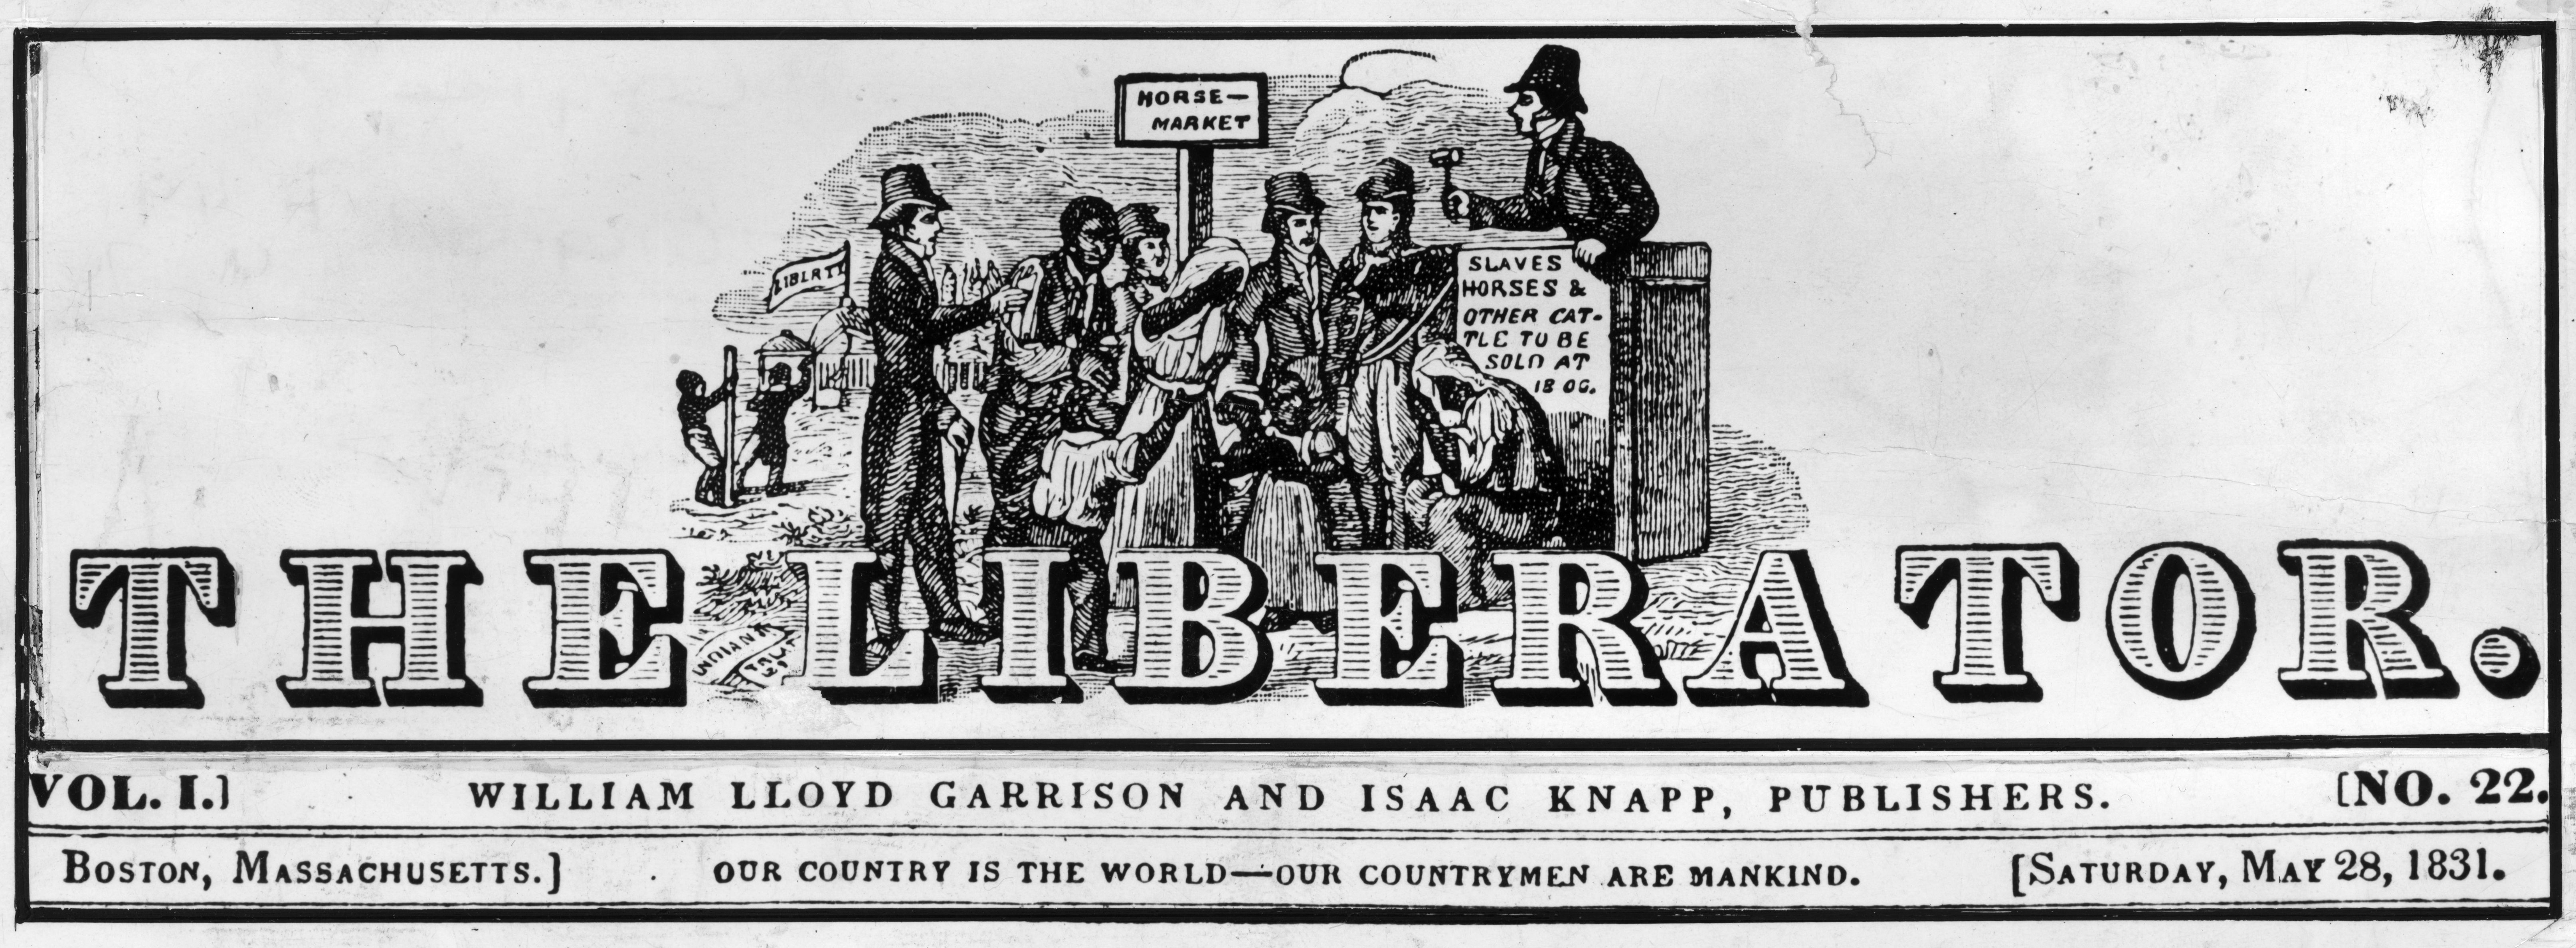 Letterhead of the William Lloyd Garrison campaigning paper 'The Liberator' published in Boston, Massachusetts, 1831.